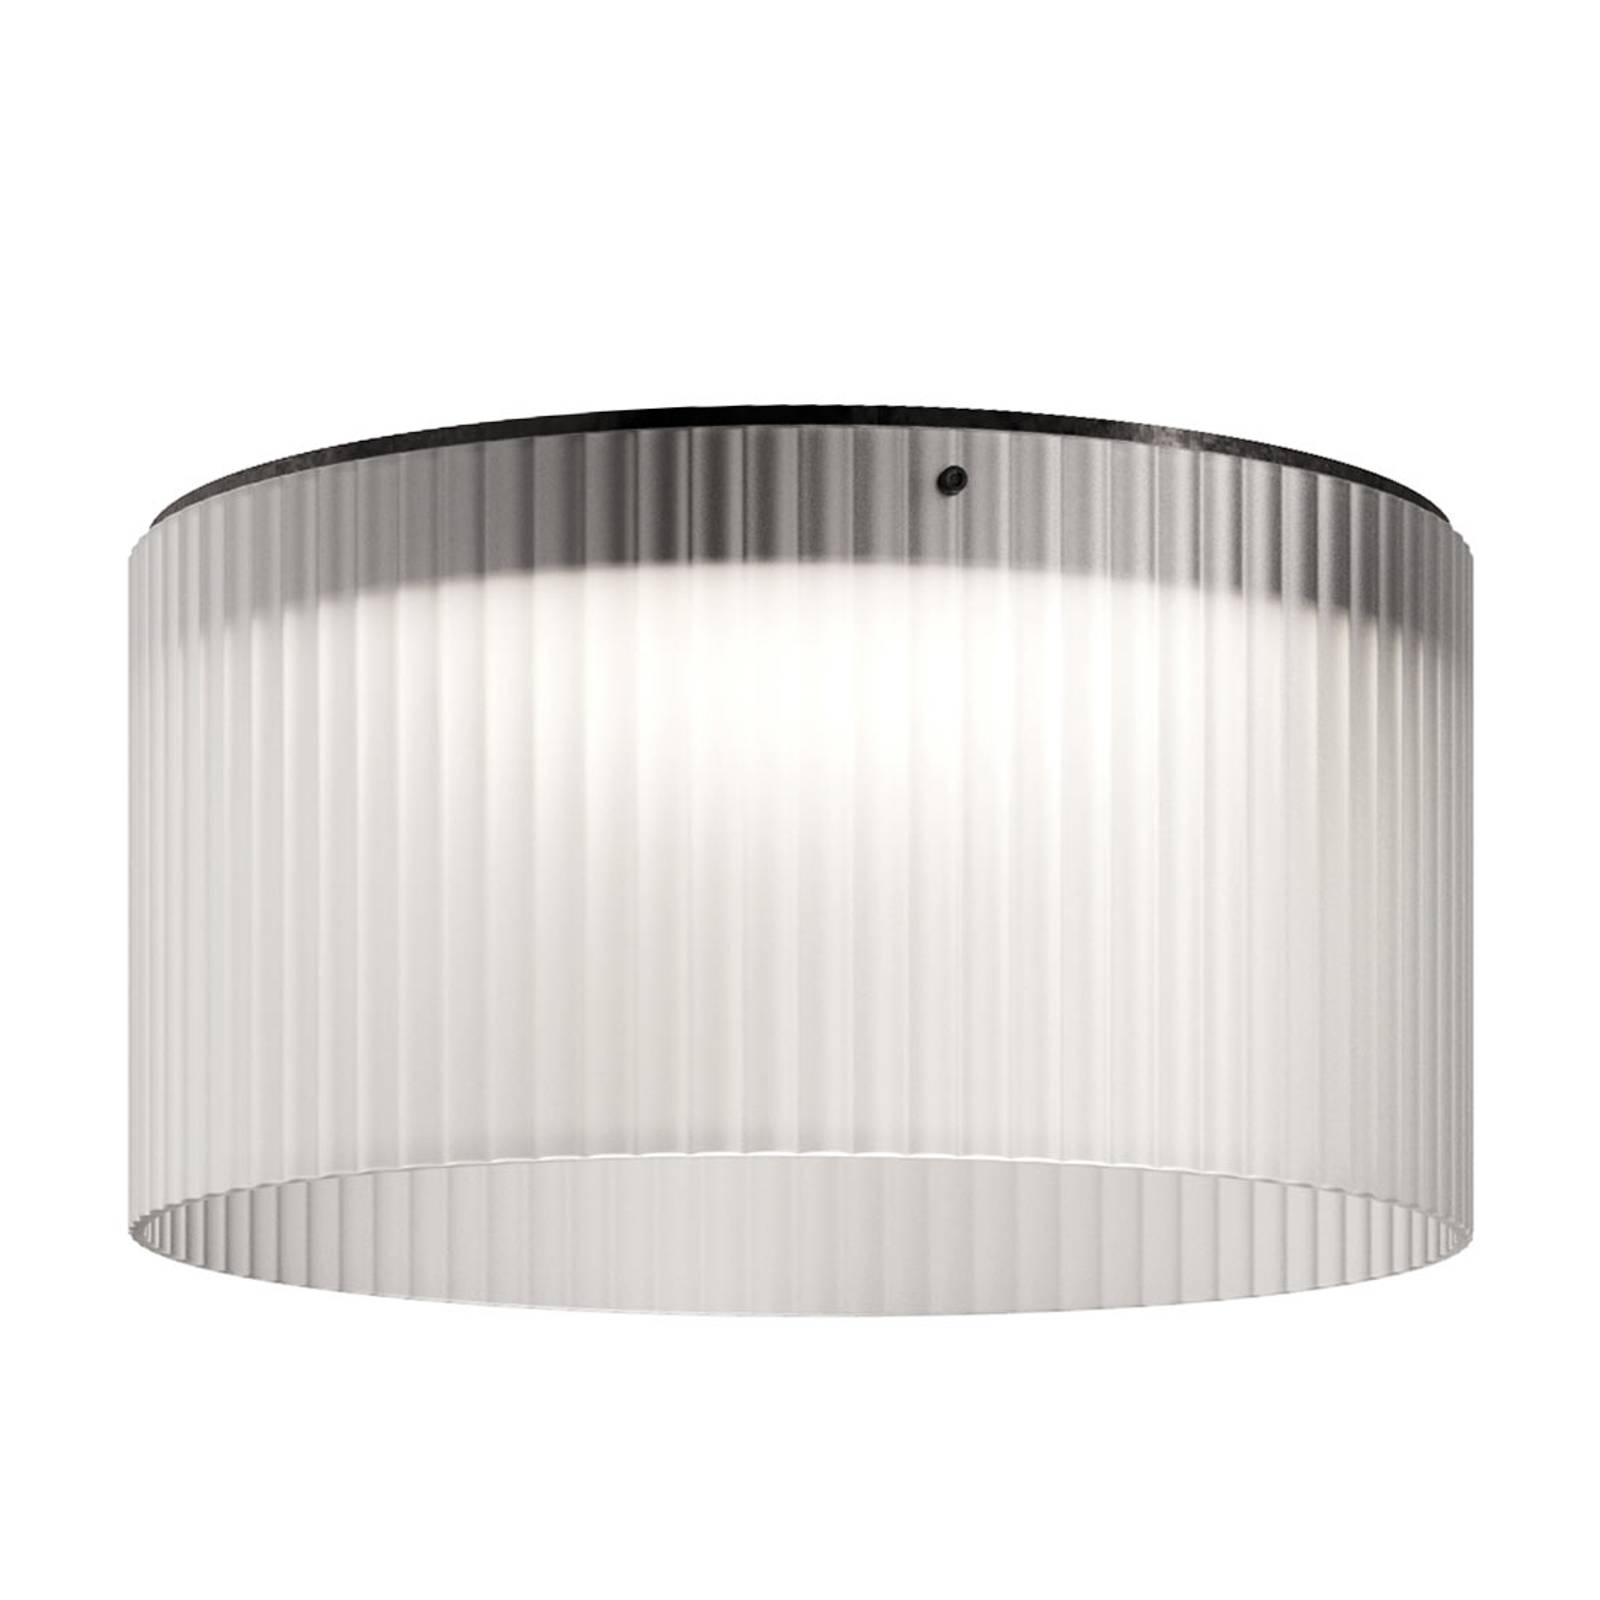 Kundalini Giass - LED ceiling light Ø 50 cm, white from Kundalini